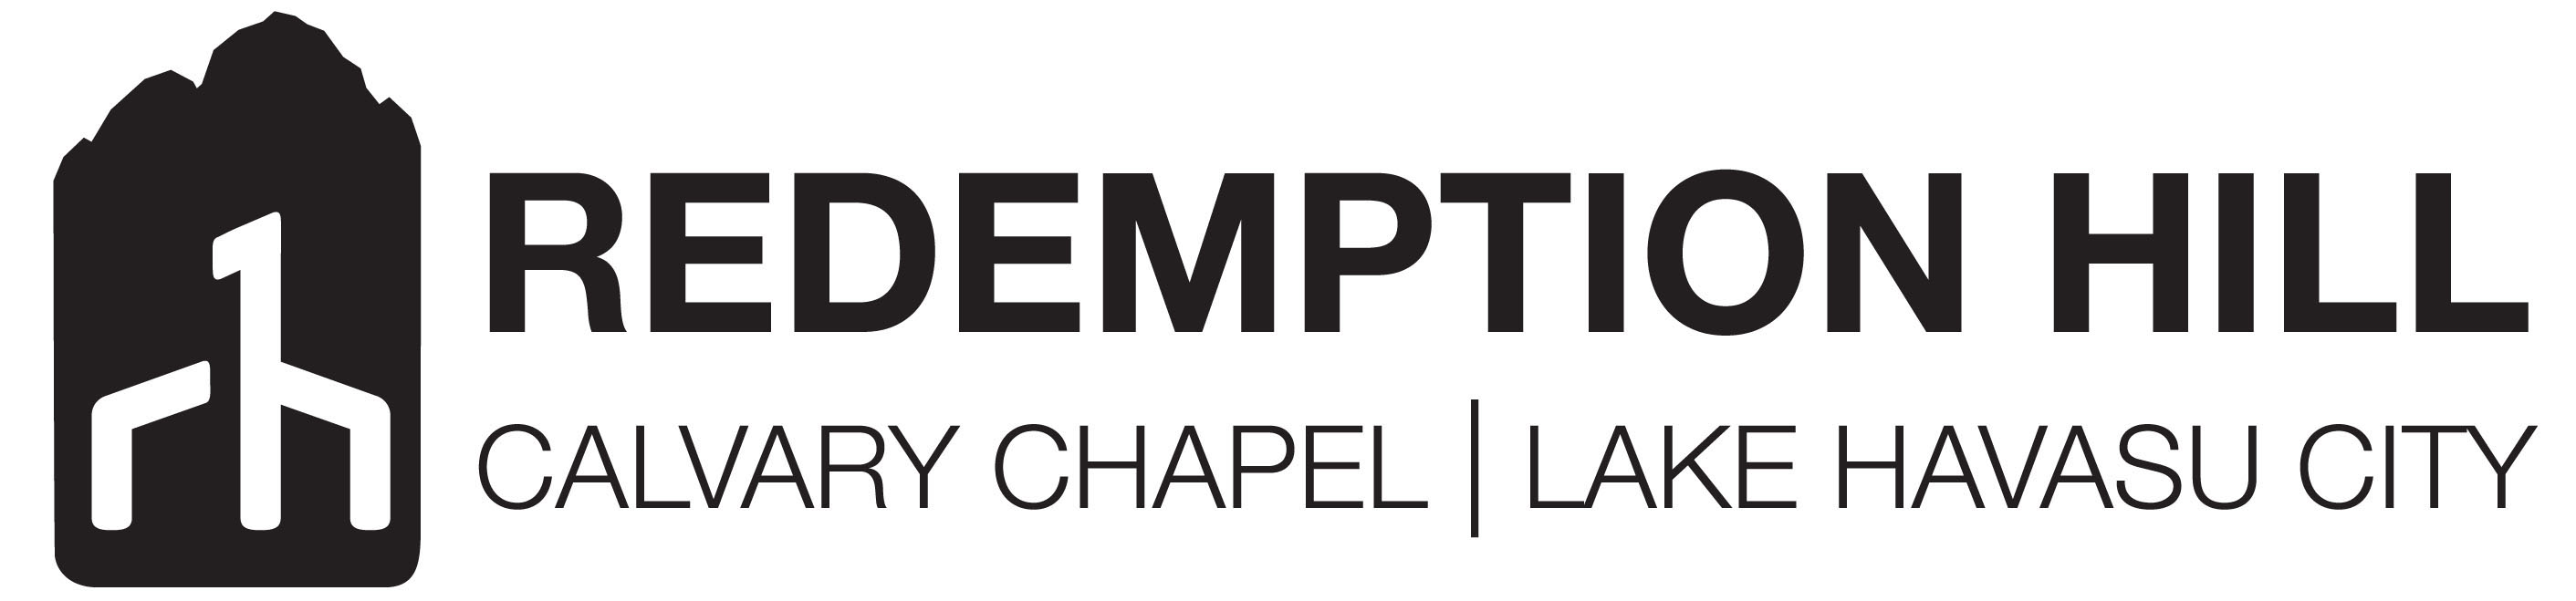 Redemption Hill Calvary Chapel